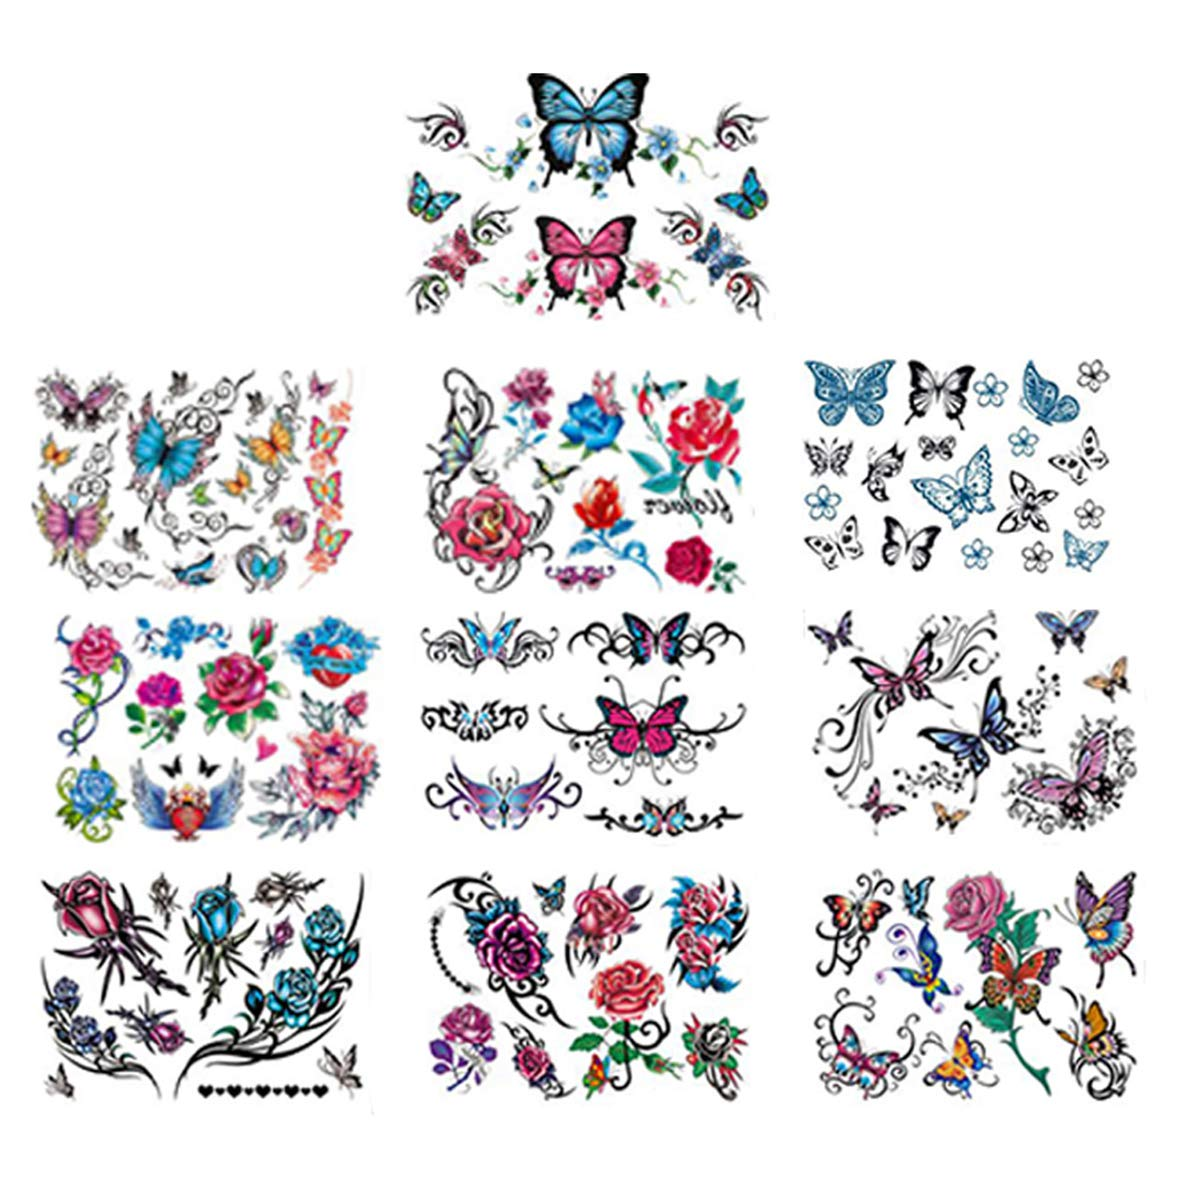 PEO Temporary Tattoos Stickers, 70 Sheets Flowers, Butterflies and Multi-Colored Mixed Style Body Art Temporary Tattoos for Women, Girls or Kids